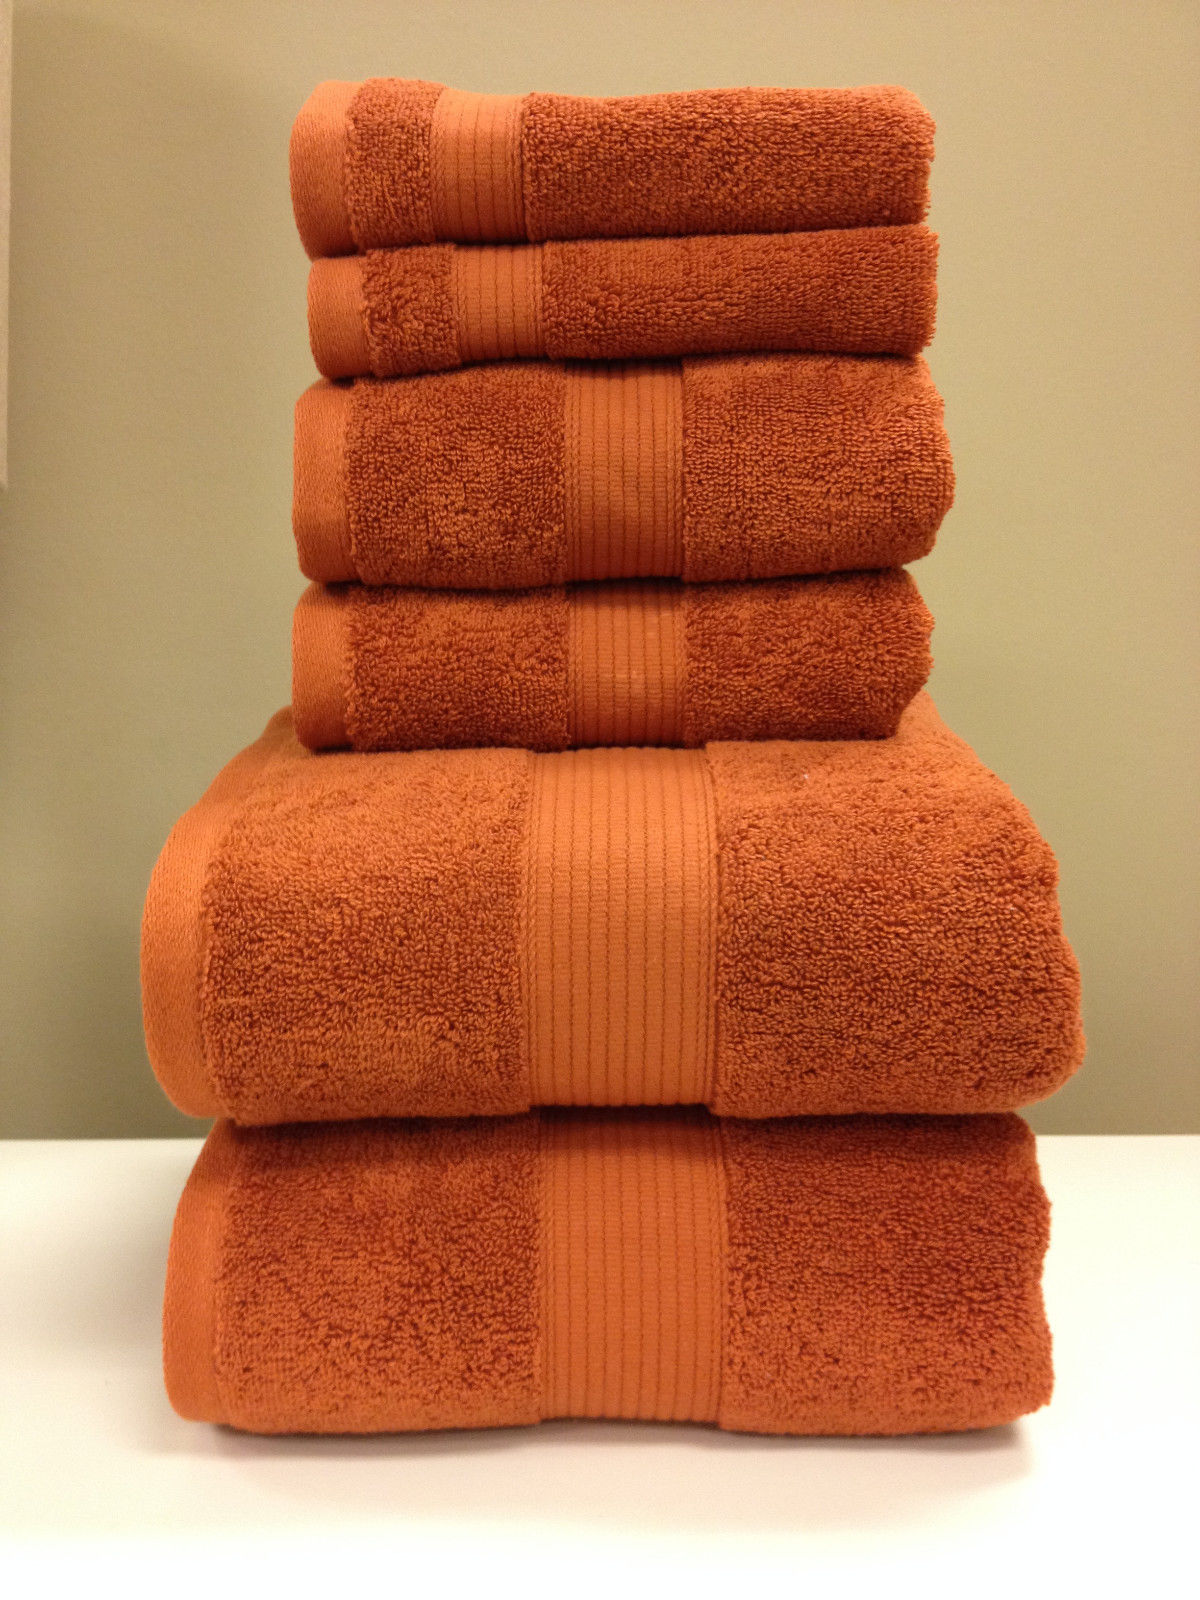 Plush 100-Percent Cotton 6-Piece Towel Set Ultra Soft and Super Absorbent by Royal Plaza Textiles, Inc.